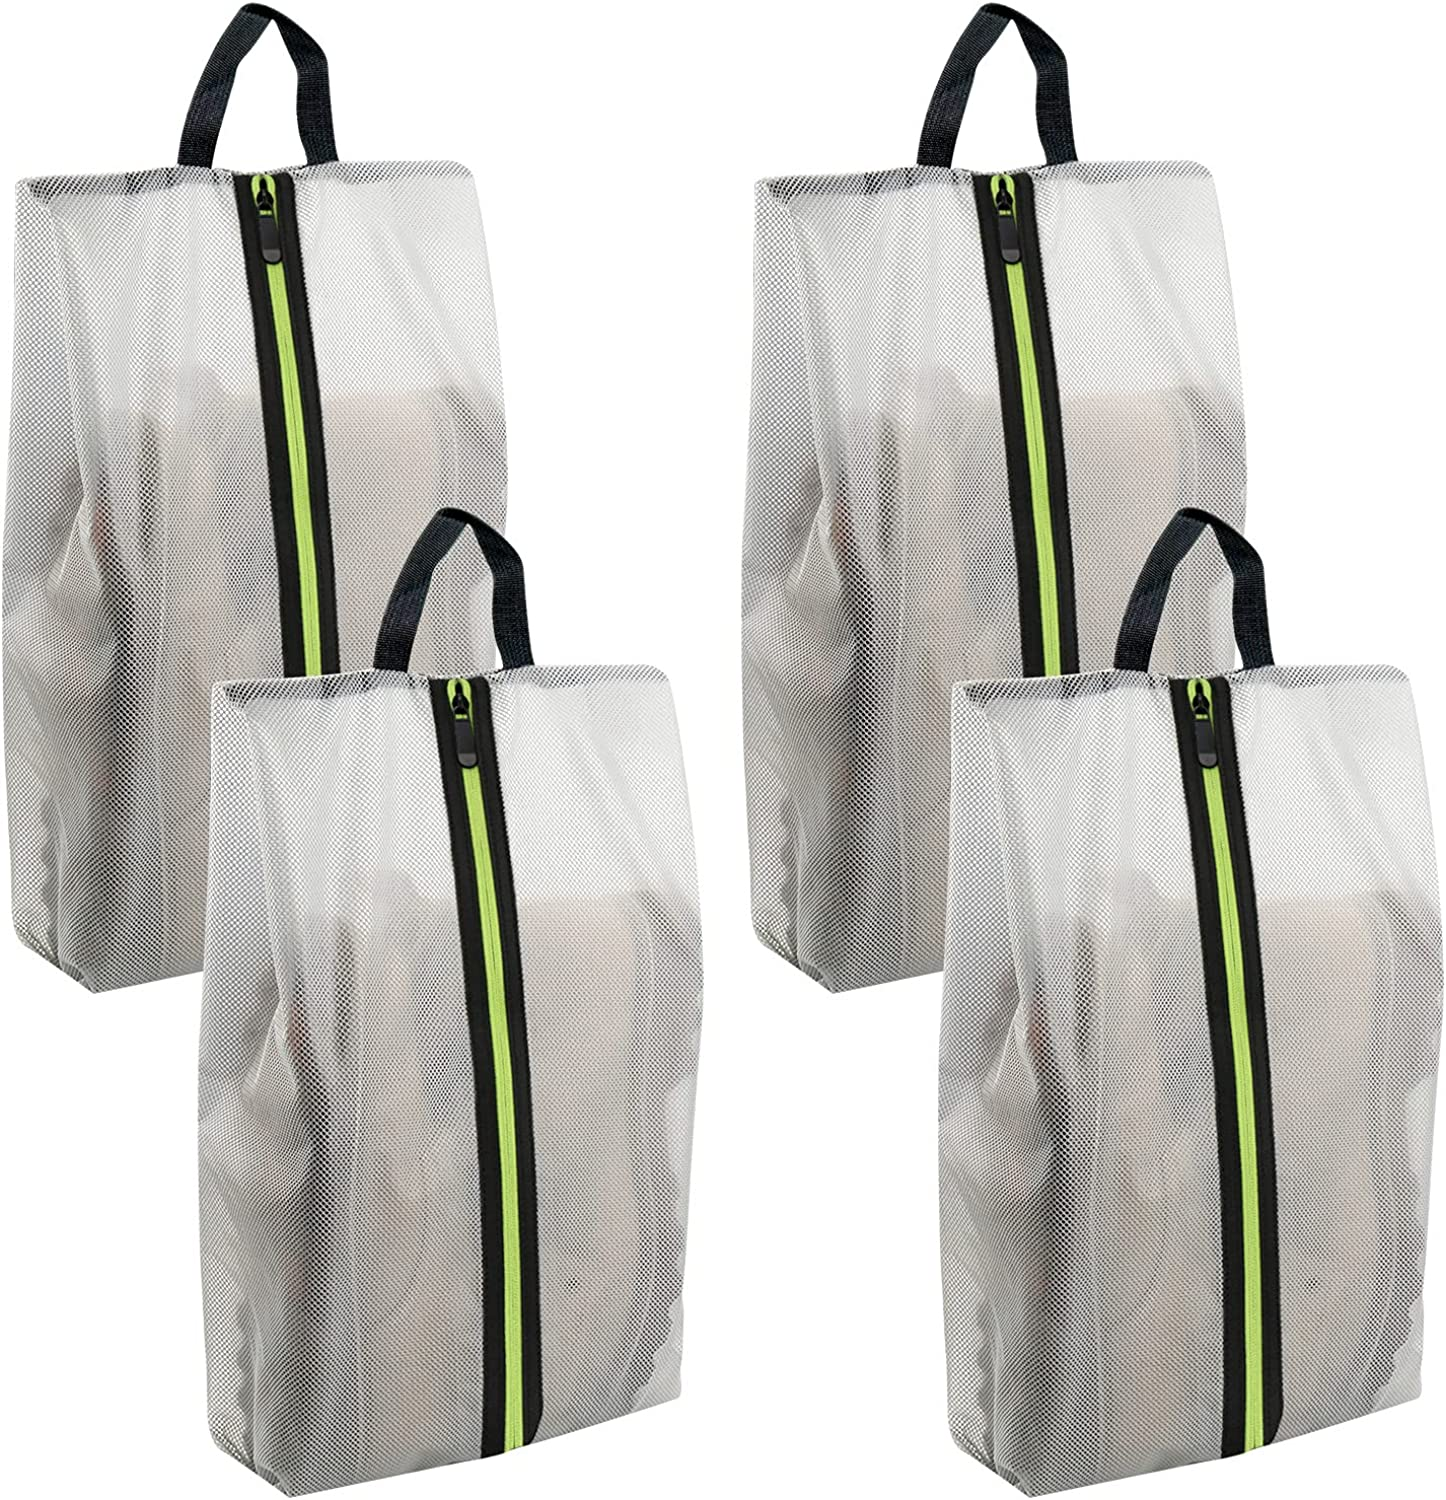 Shoe Bags for Travel - Waterproof Large Austin Mall Pouches Visible Sto store